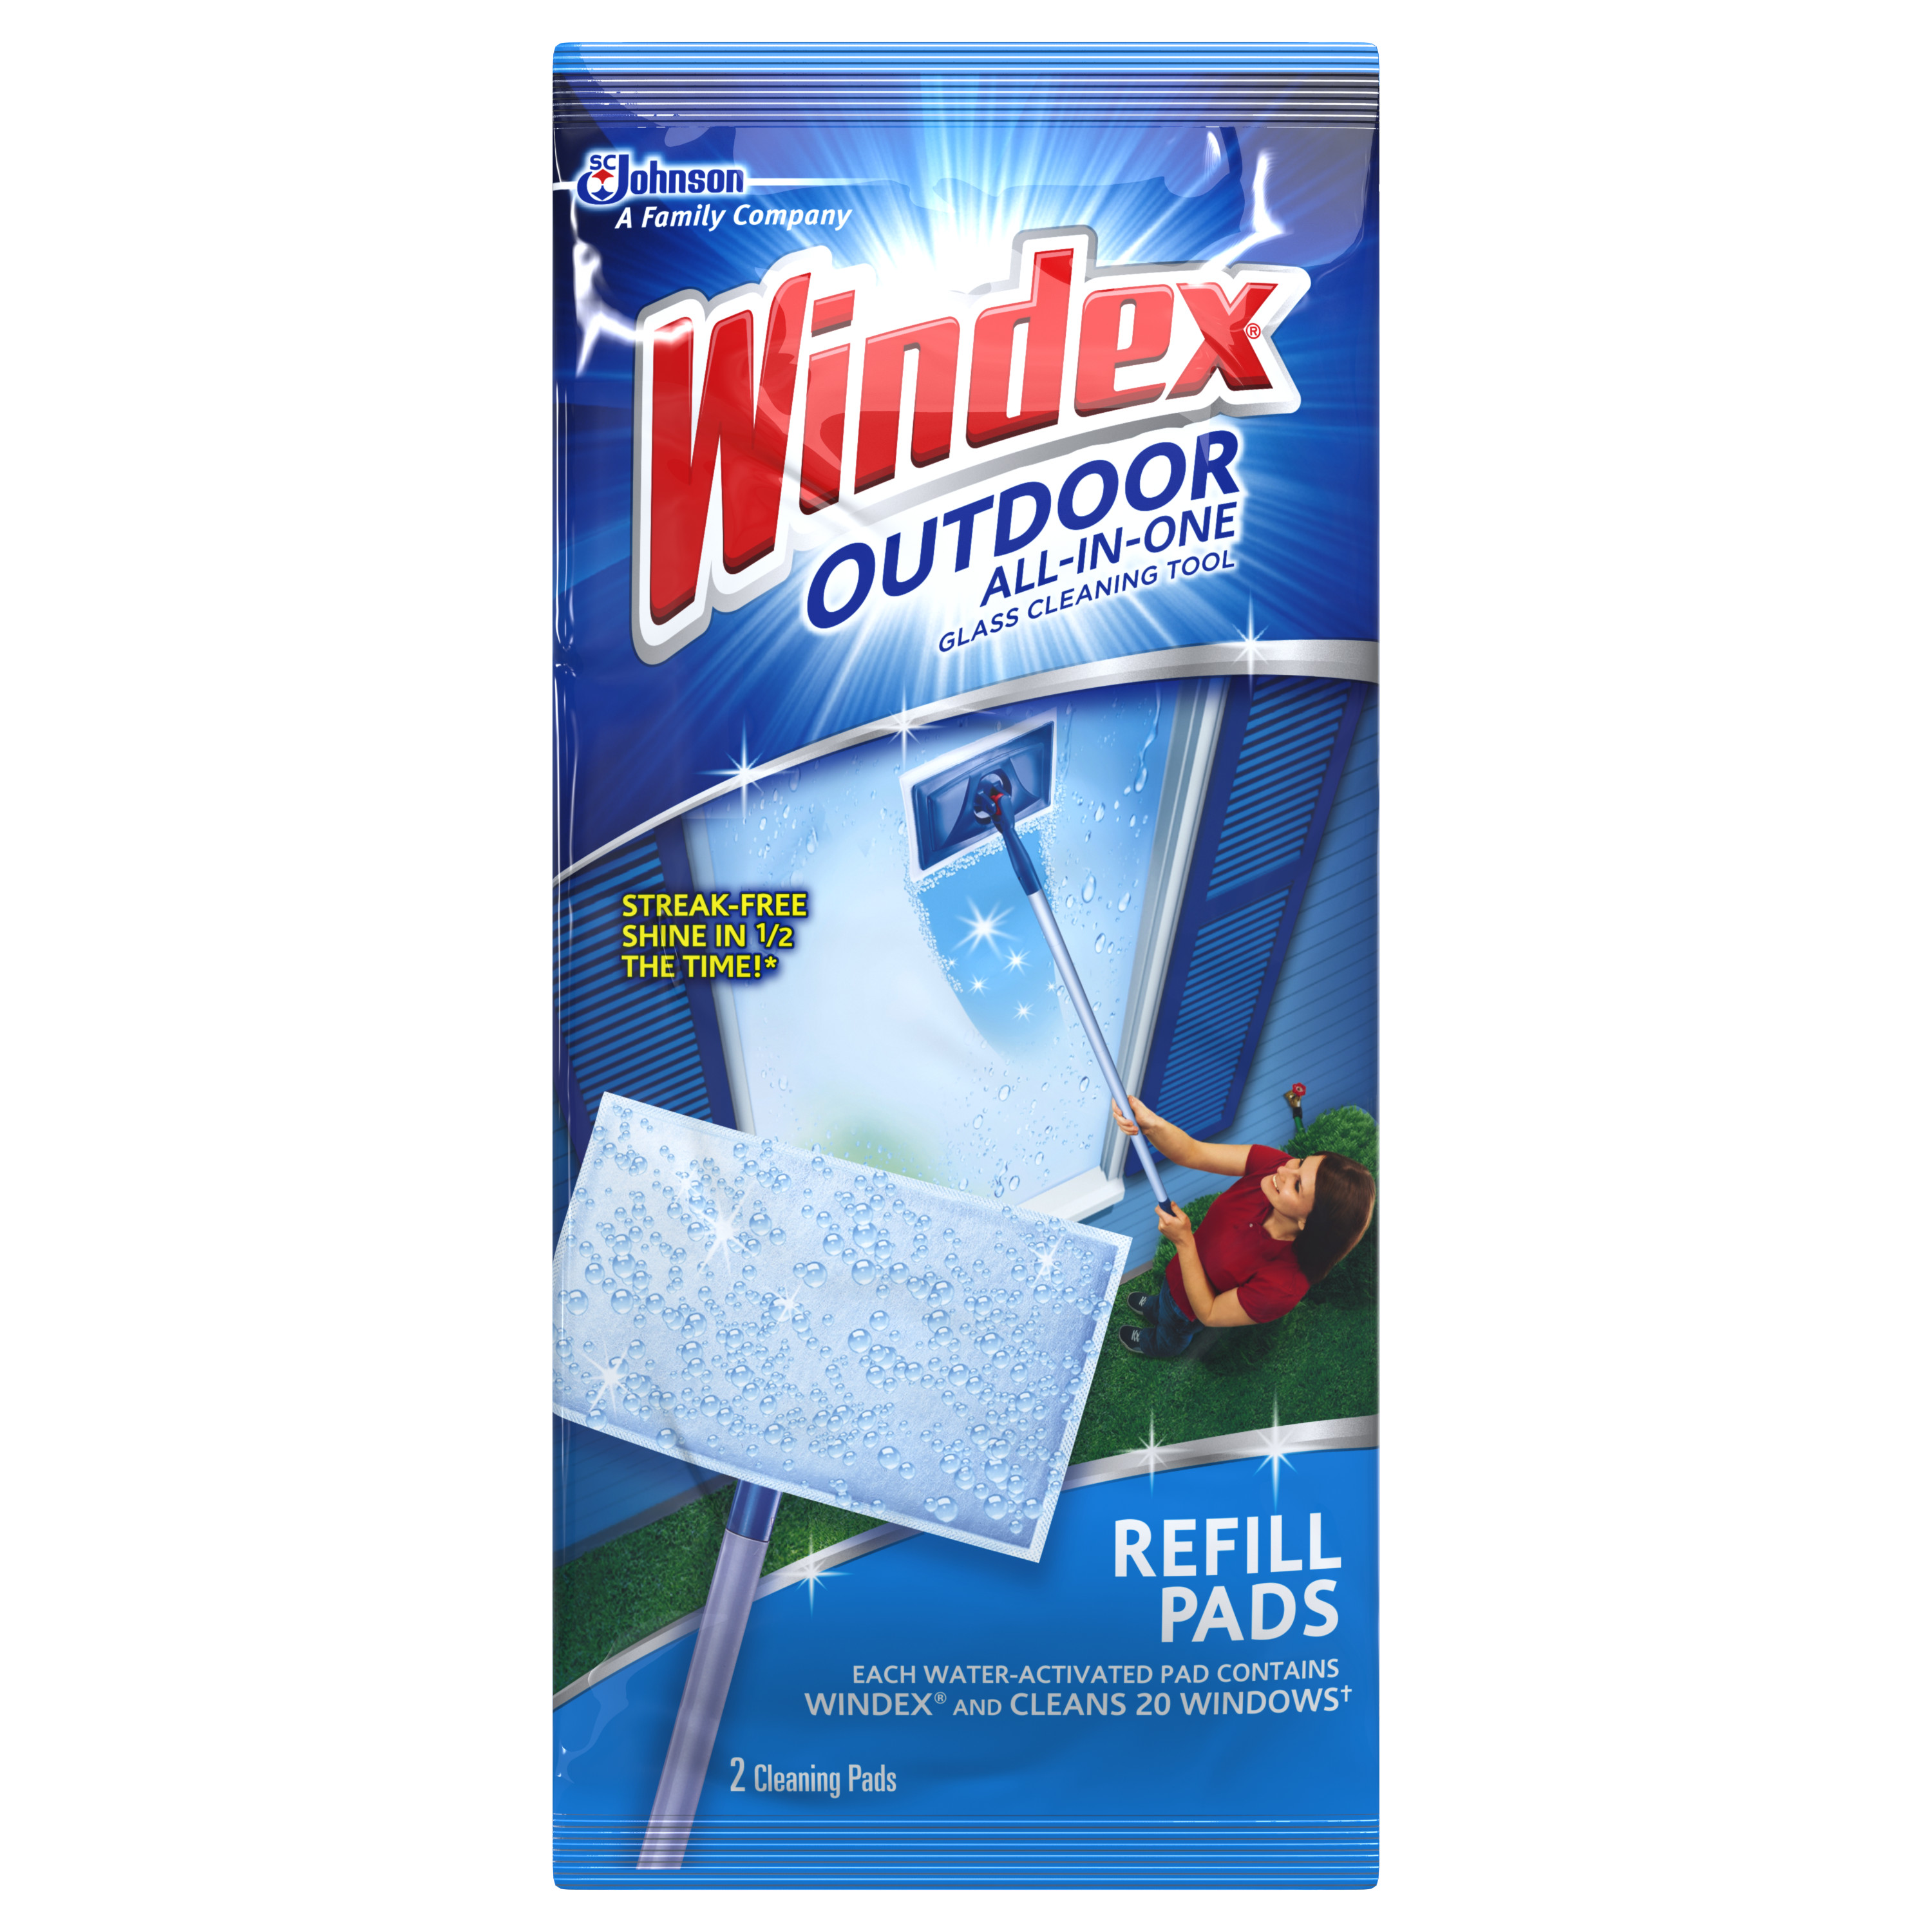 Windex Outdoor All-in One Glass Cleaning Tool Refill 2 count